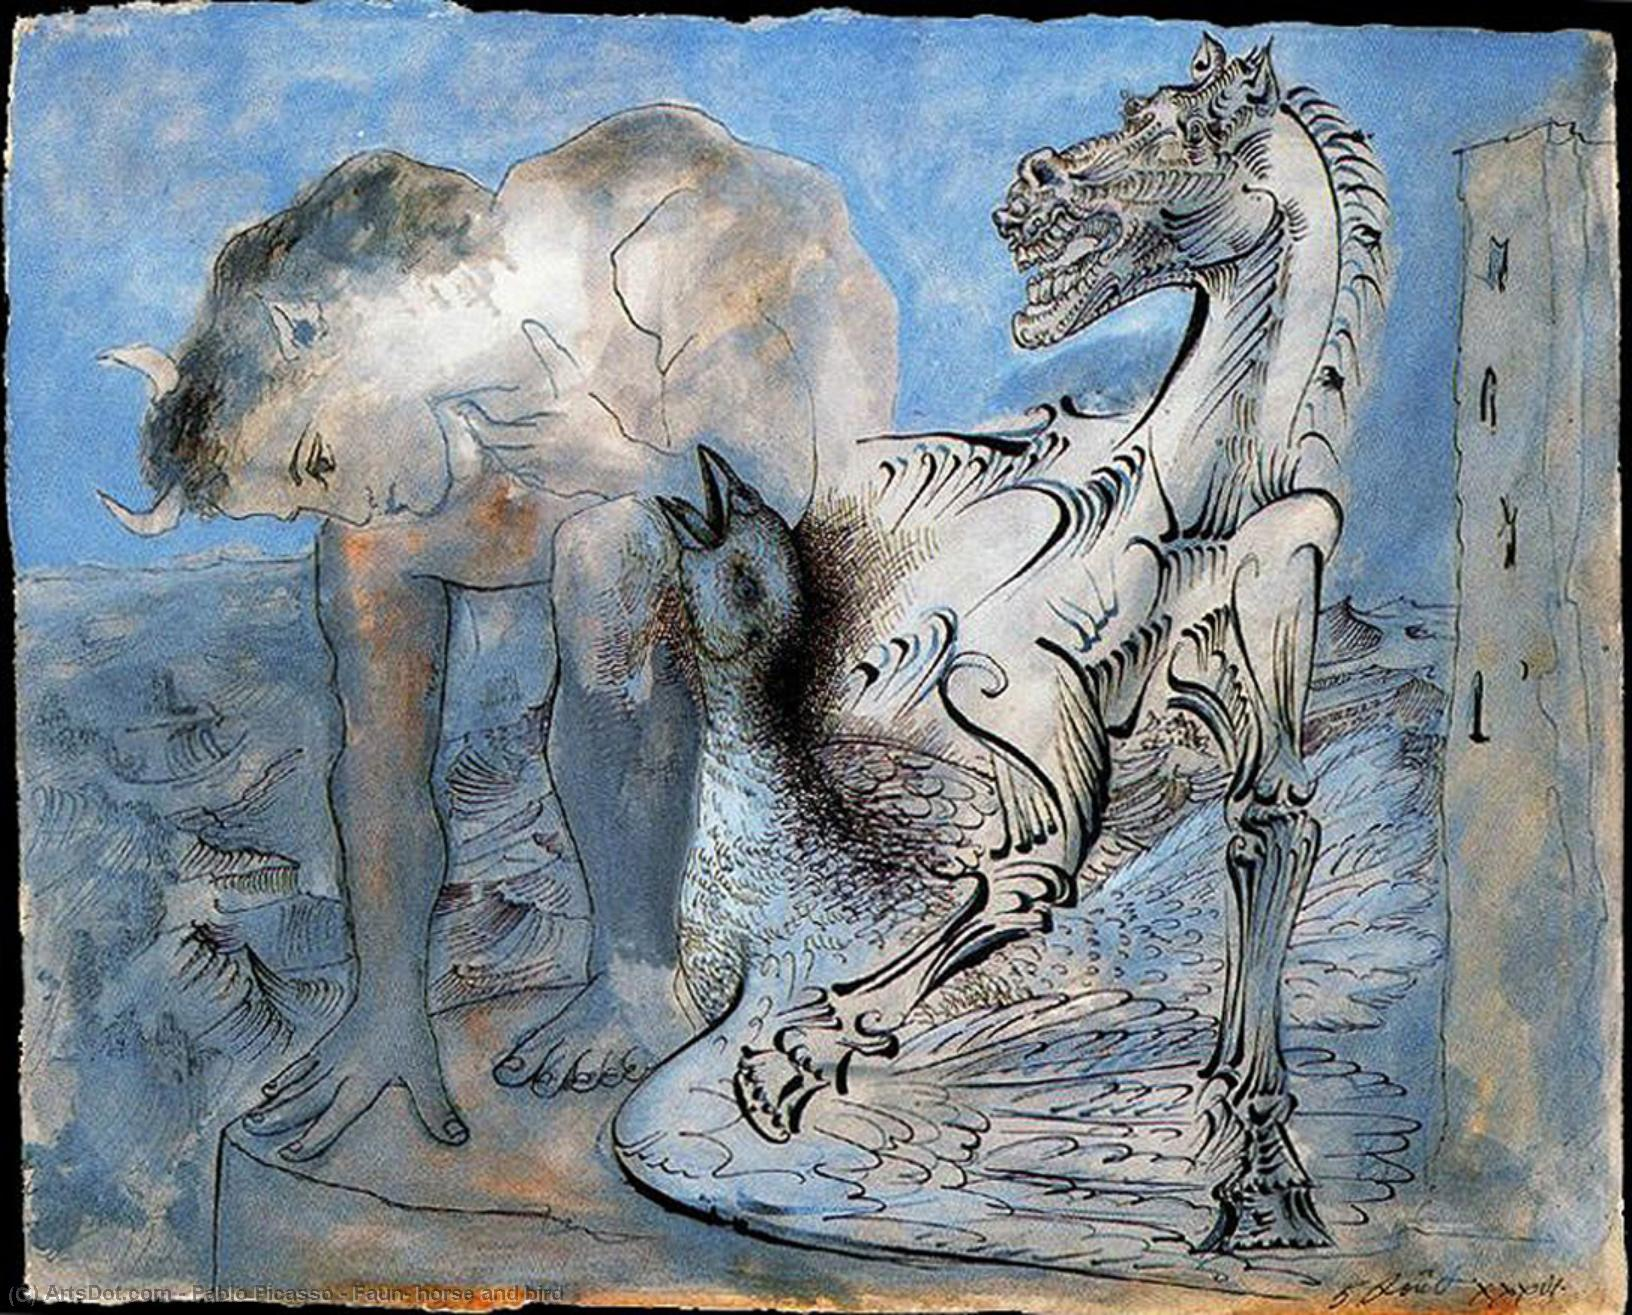 Wikioo.org - The Encyclopedia of Fine Arts - Painting, Artwork by Pablo Picasso - Faun, horse and bird